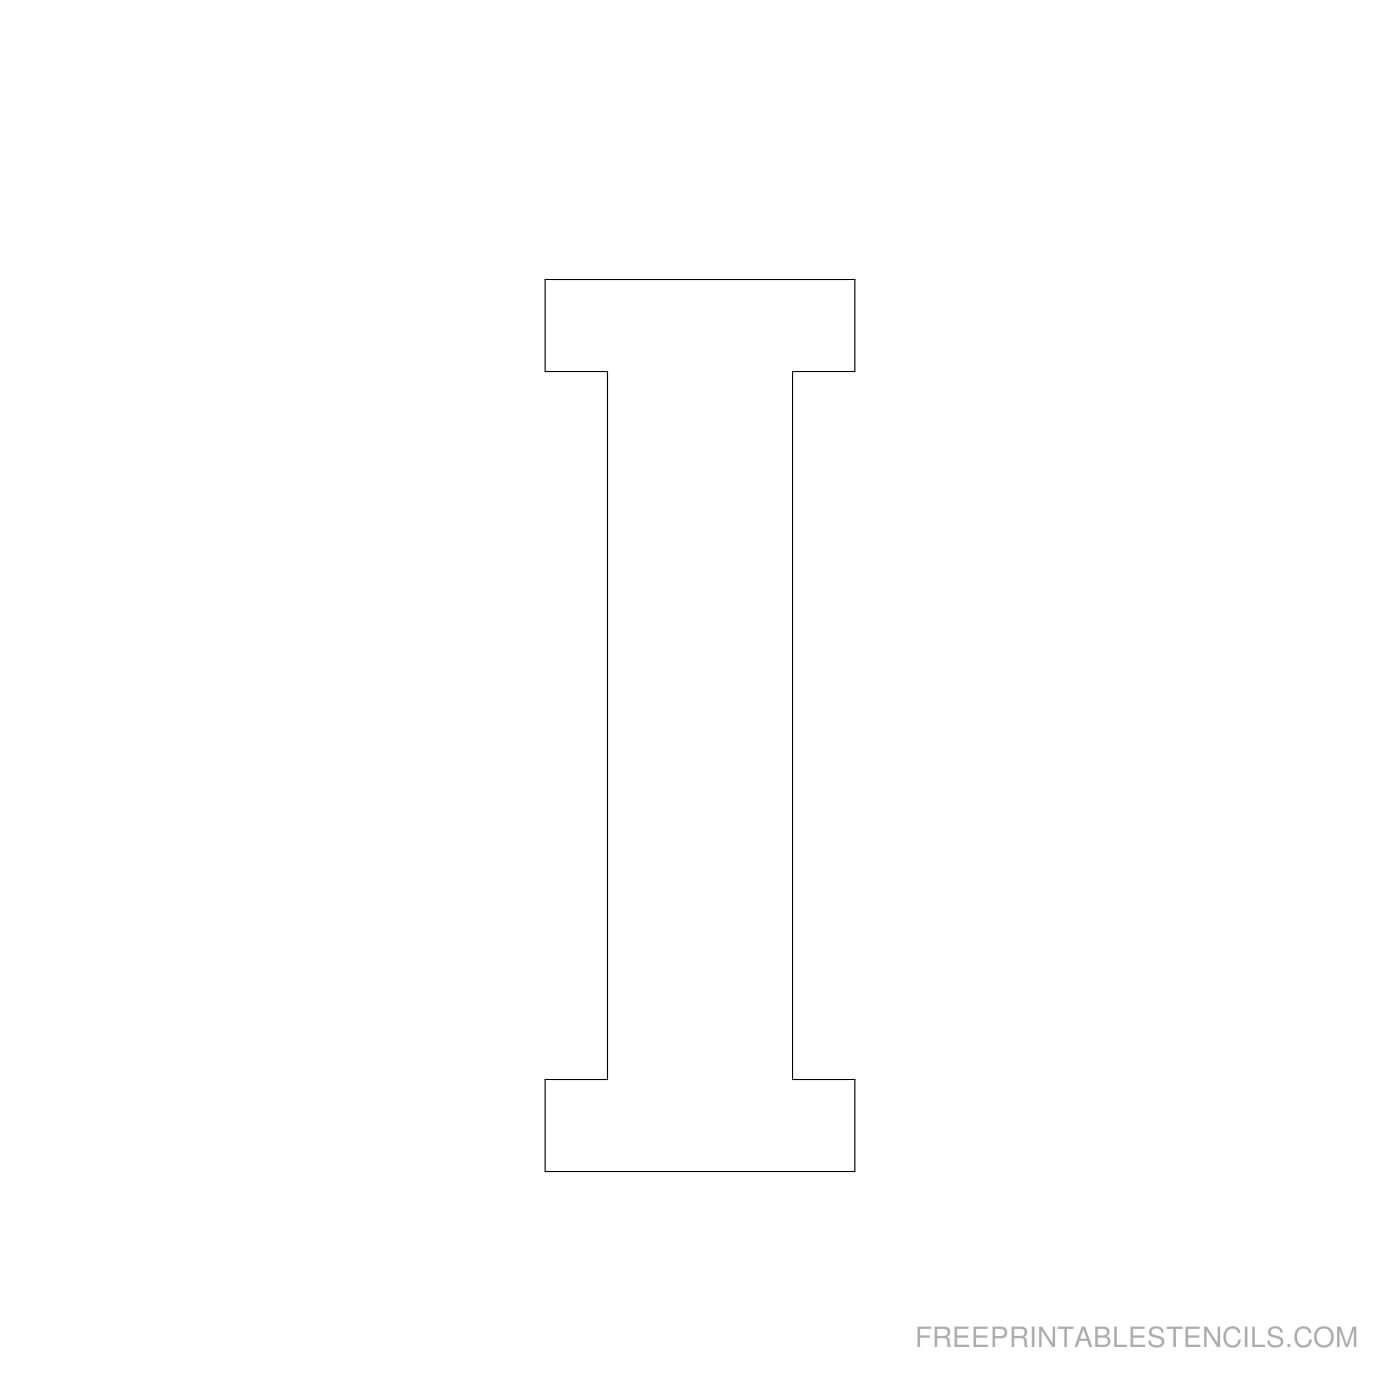 Printable 4 Inch Letter Stencils A Z | Free Printable Stencils In 4 Inch Letter Template